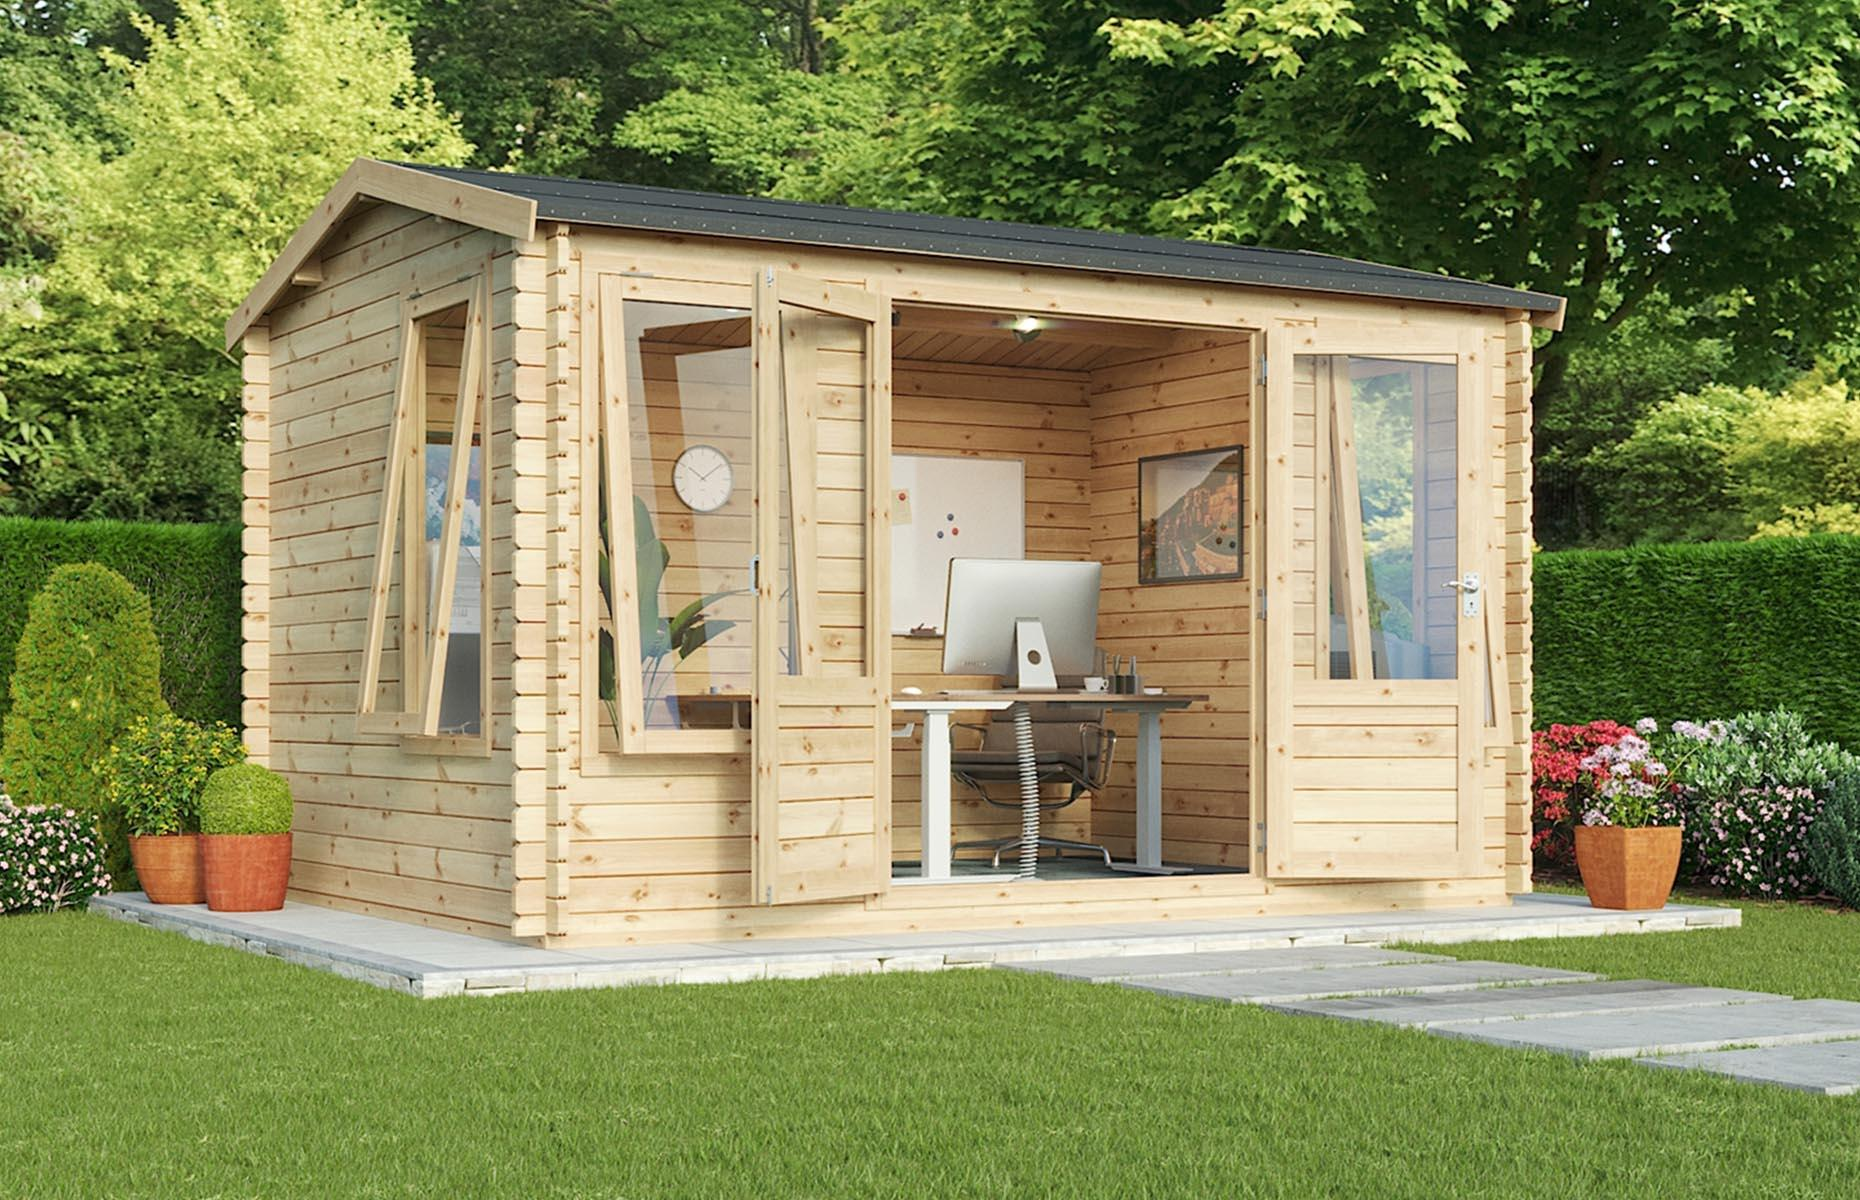 Garden rooms that are better than your house  loveproperty.com